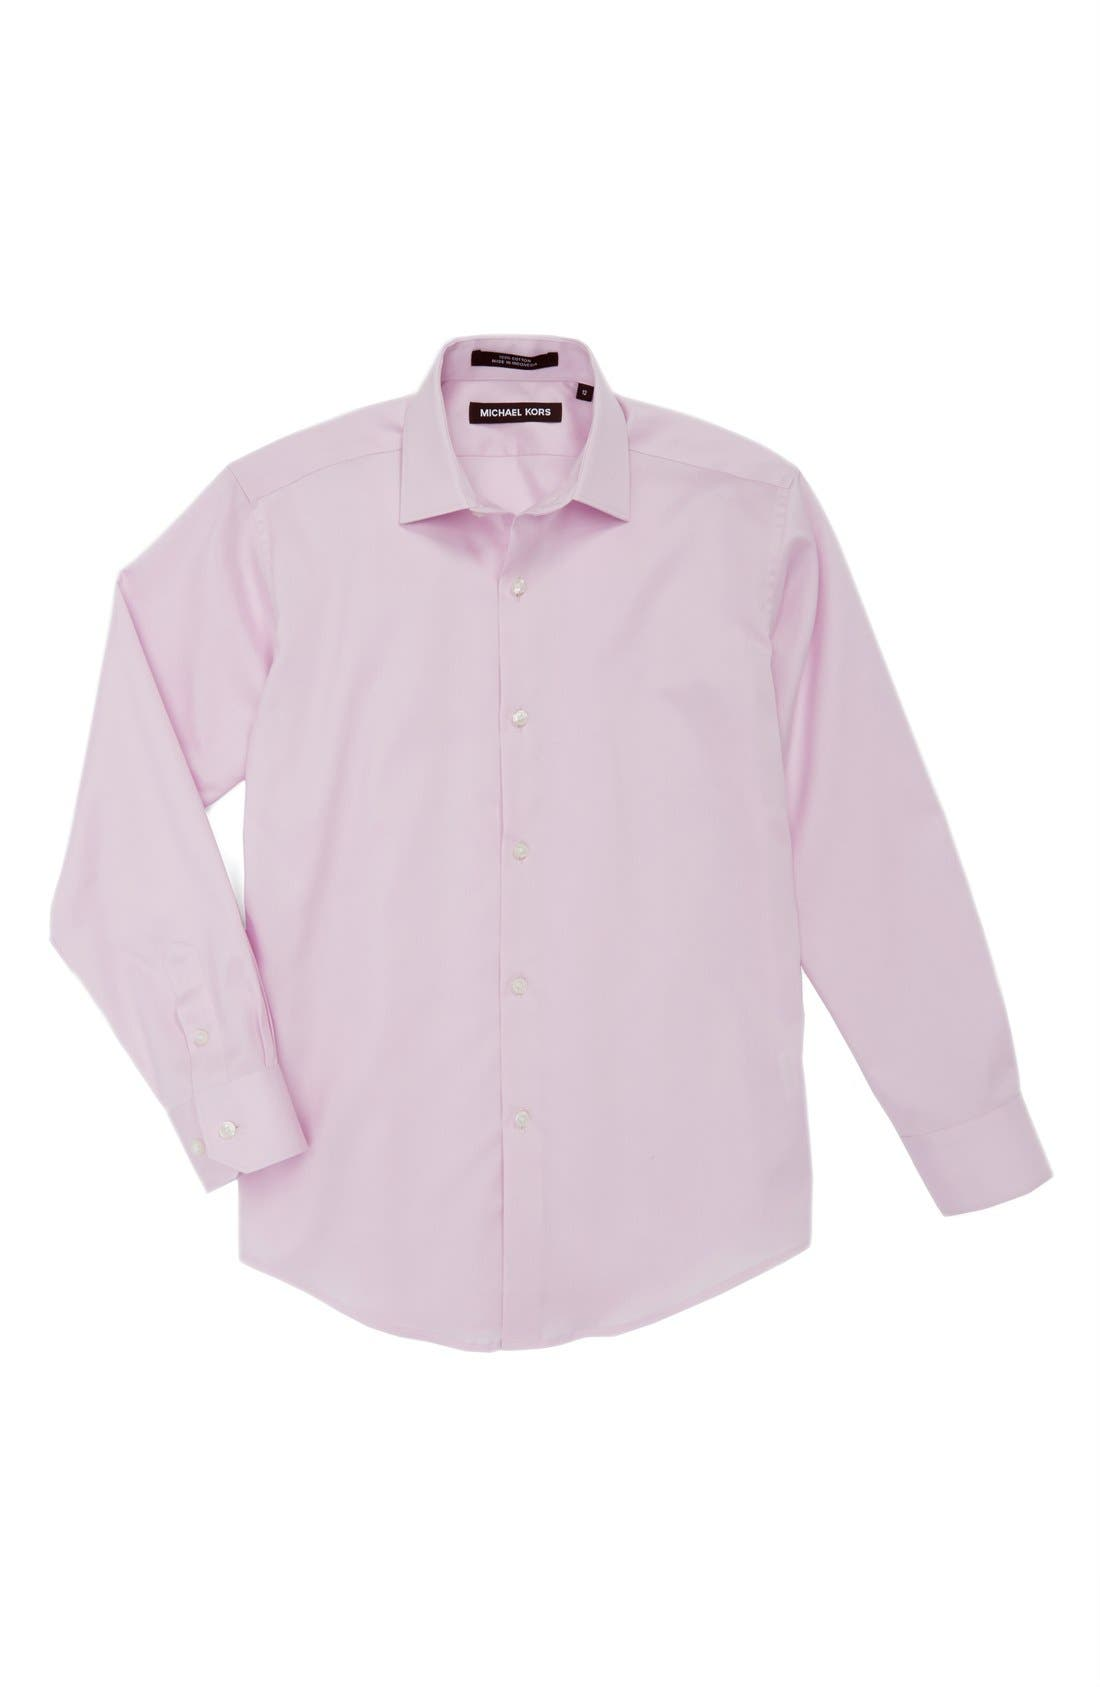 MICHAEL KORS, Woven Cotton Dress Shirt, Main thumbnail 1, color, ROSE